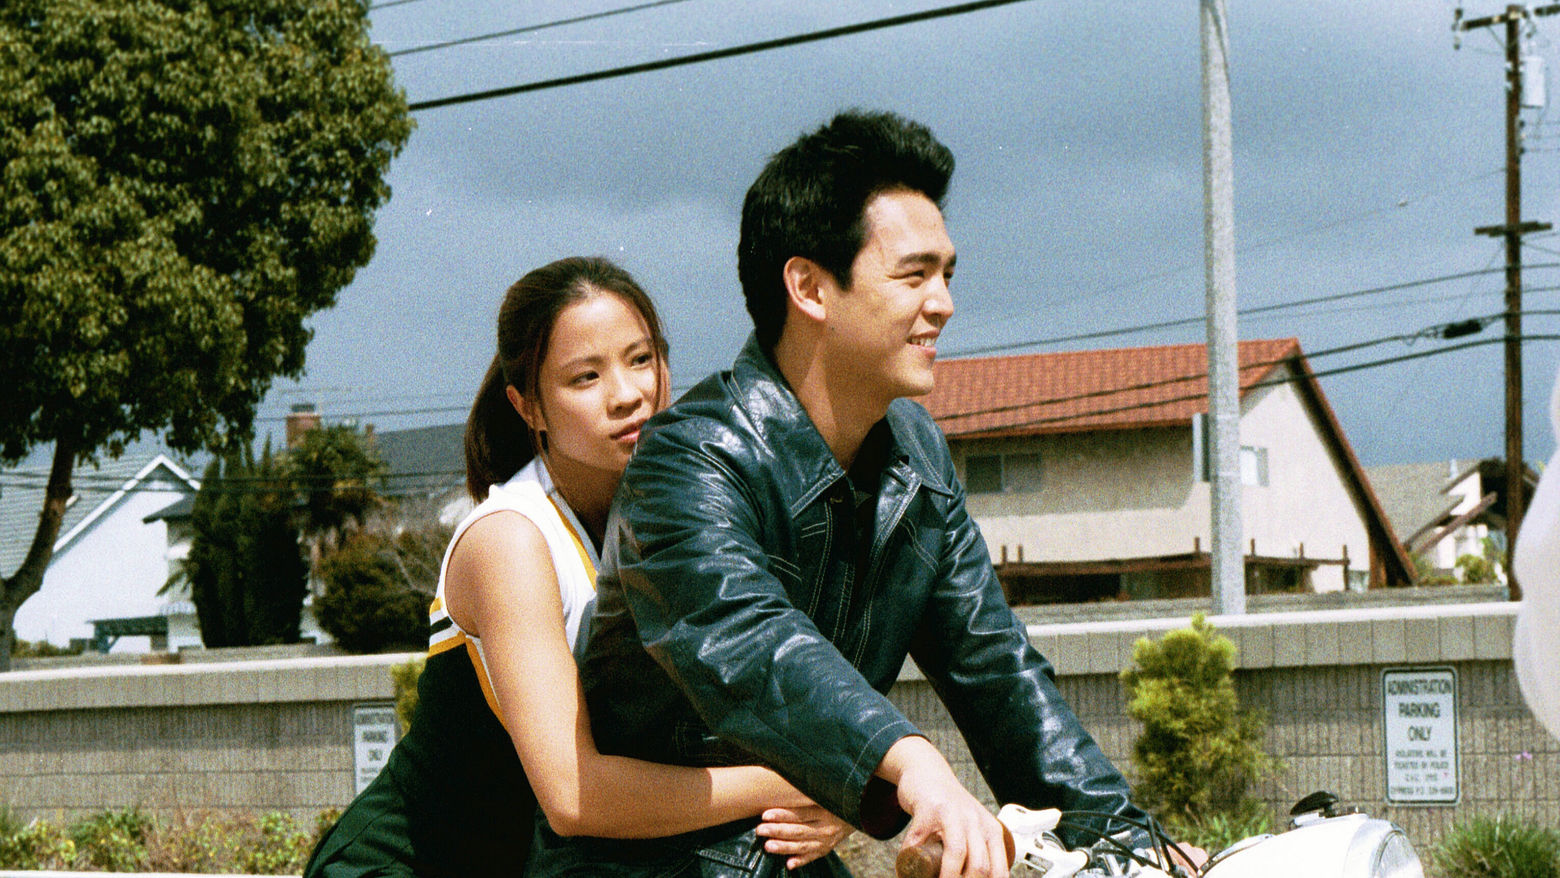 Still from the film Better Luck Tomorrow (2003) showing a young Asian American couple riding a motorcycle